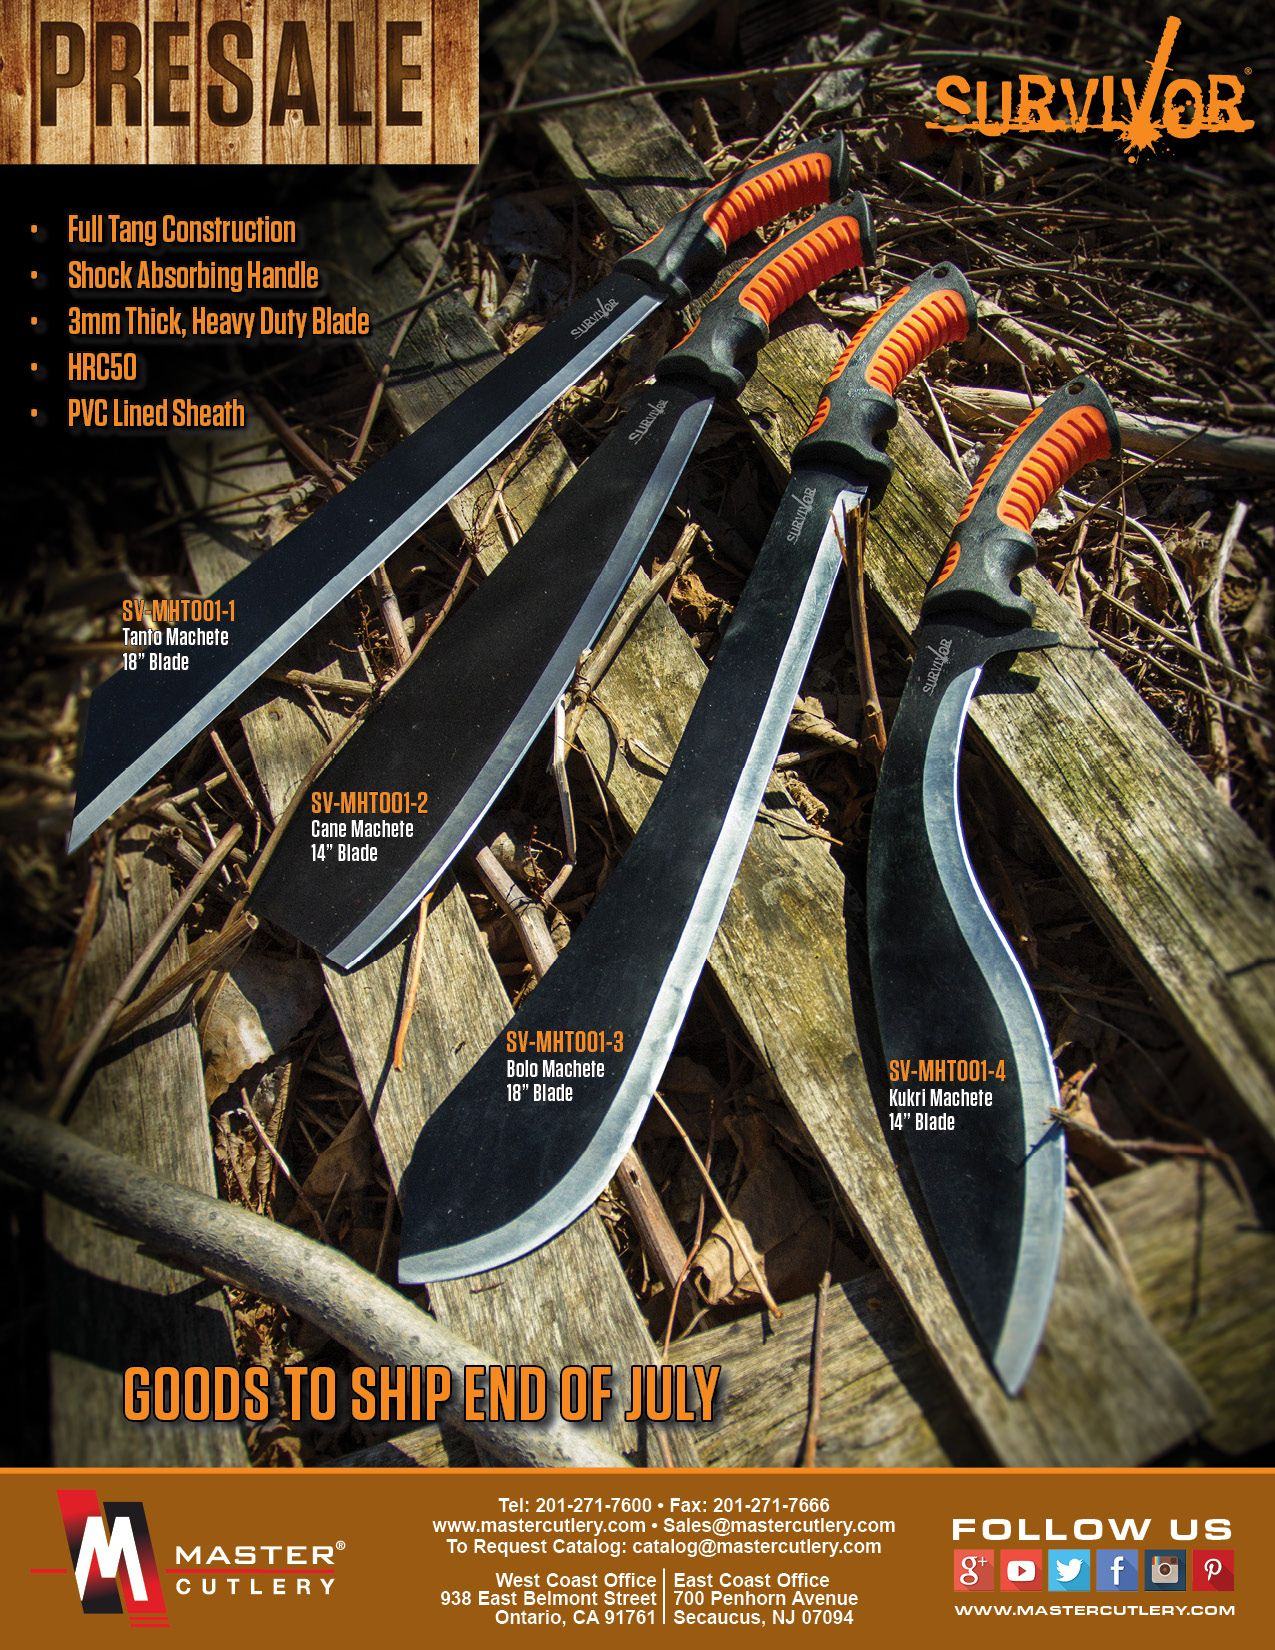 pin by master cutlery on survival gear pinterest survival gear